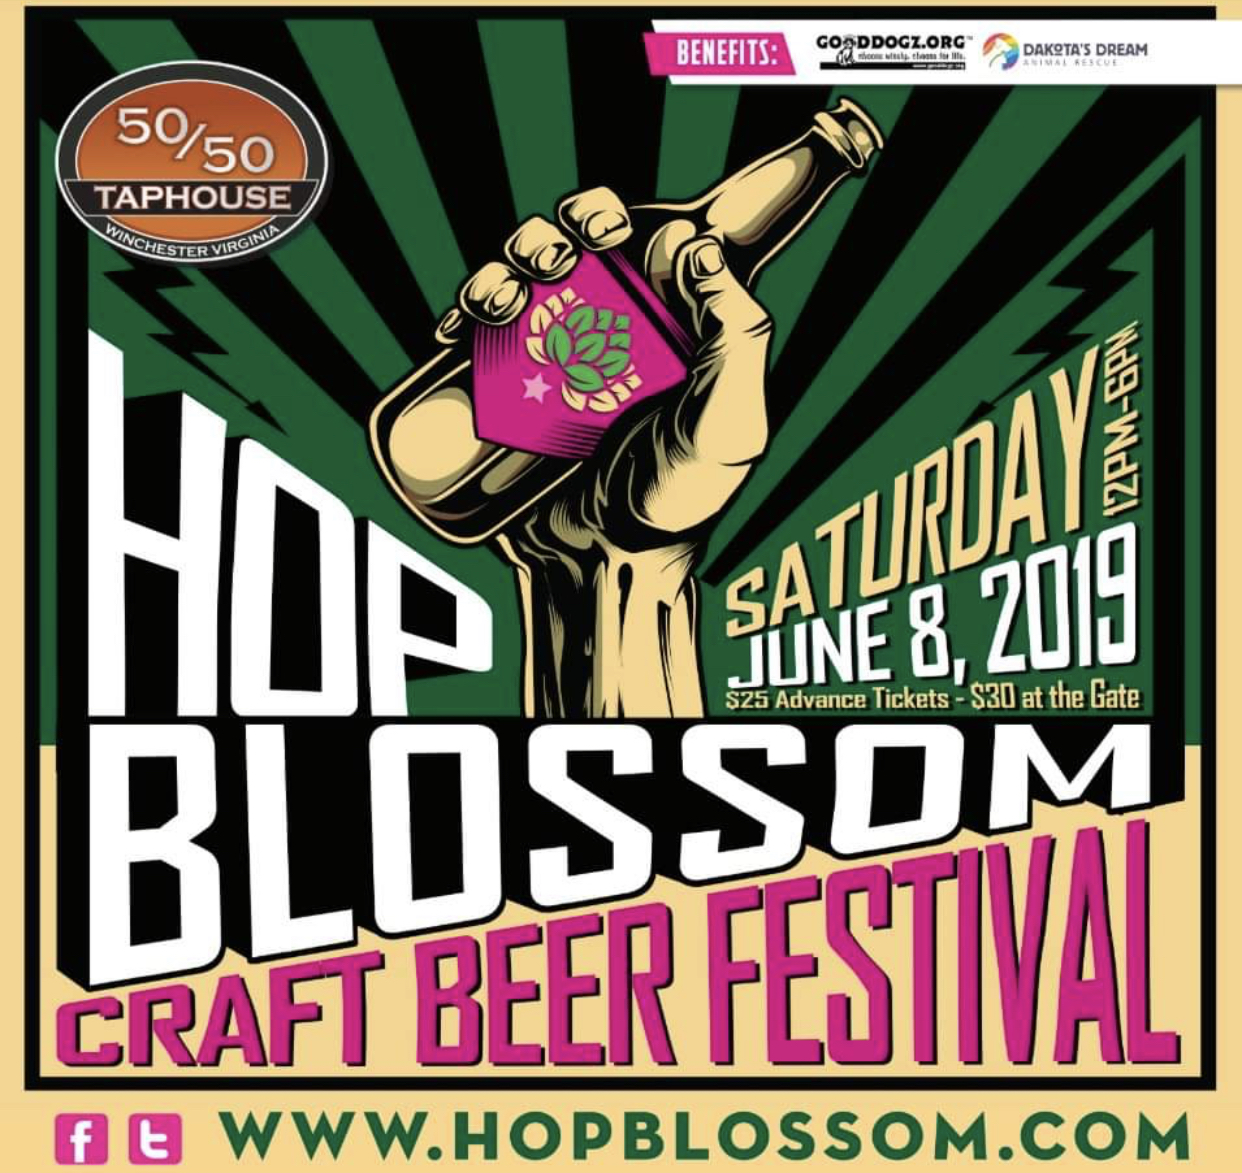 2019 Hop Blossom Craft Beer Festival